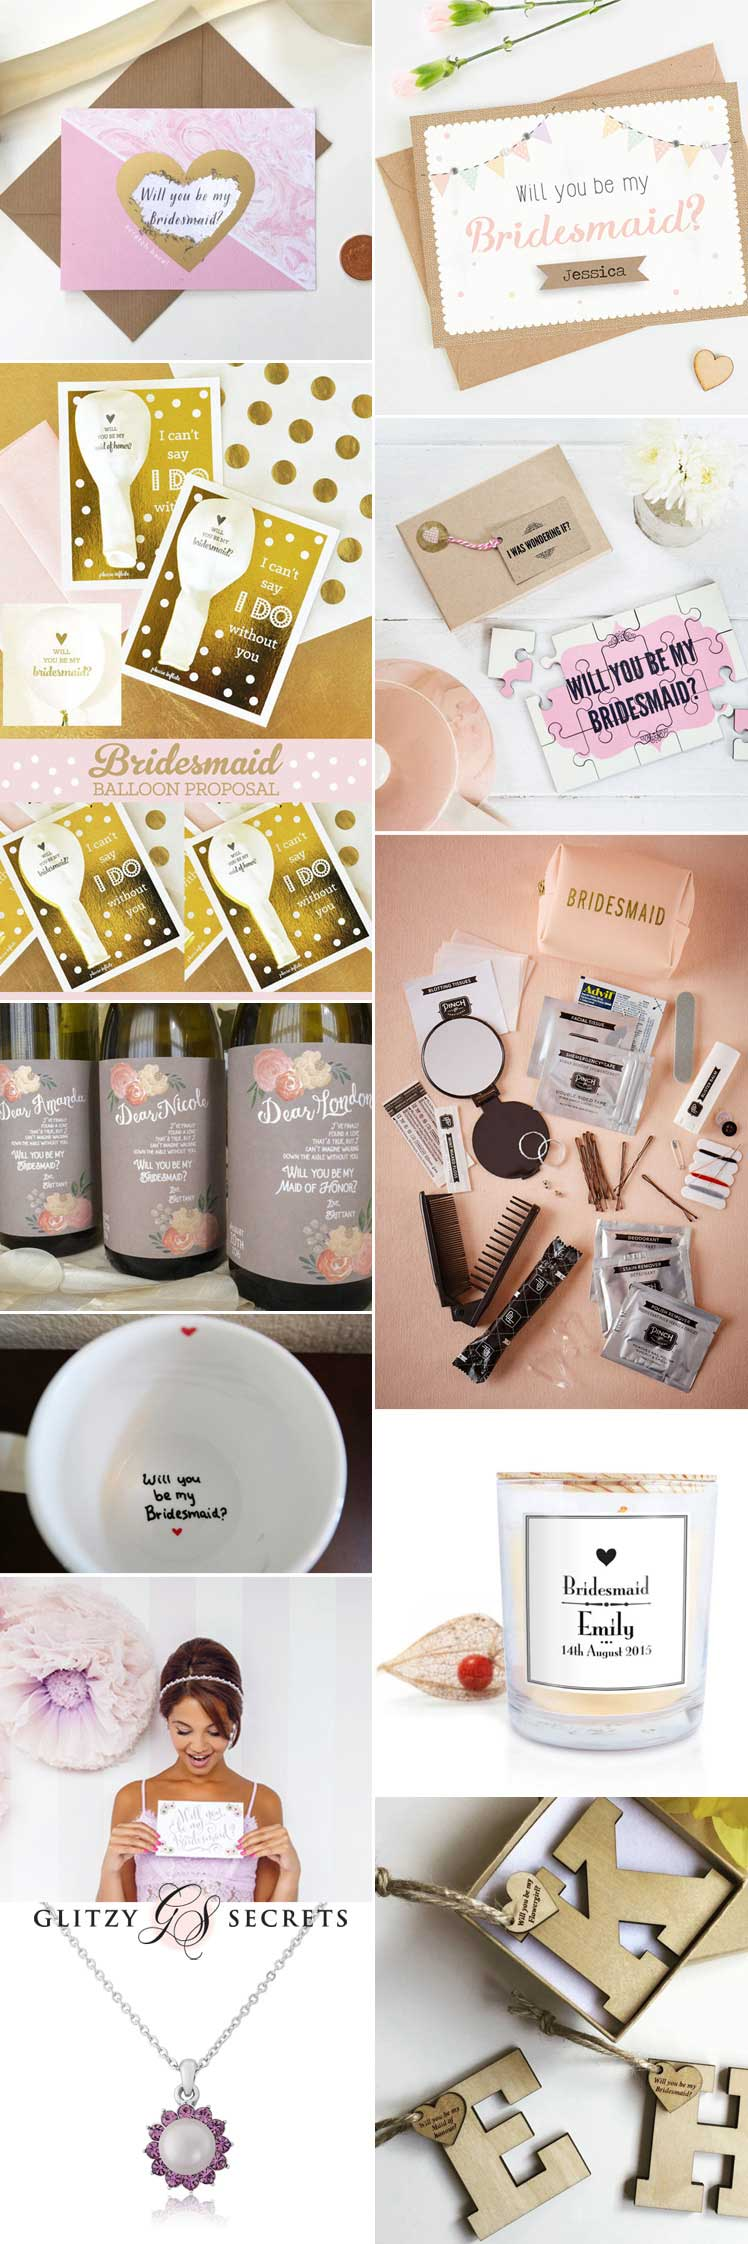 Will you be my bridesmaid ideas inspiration